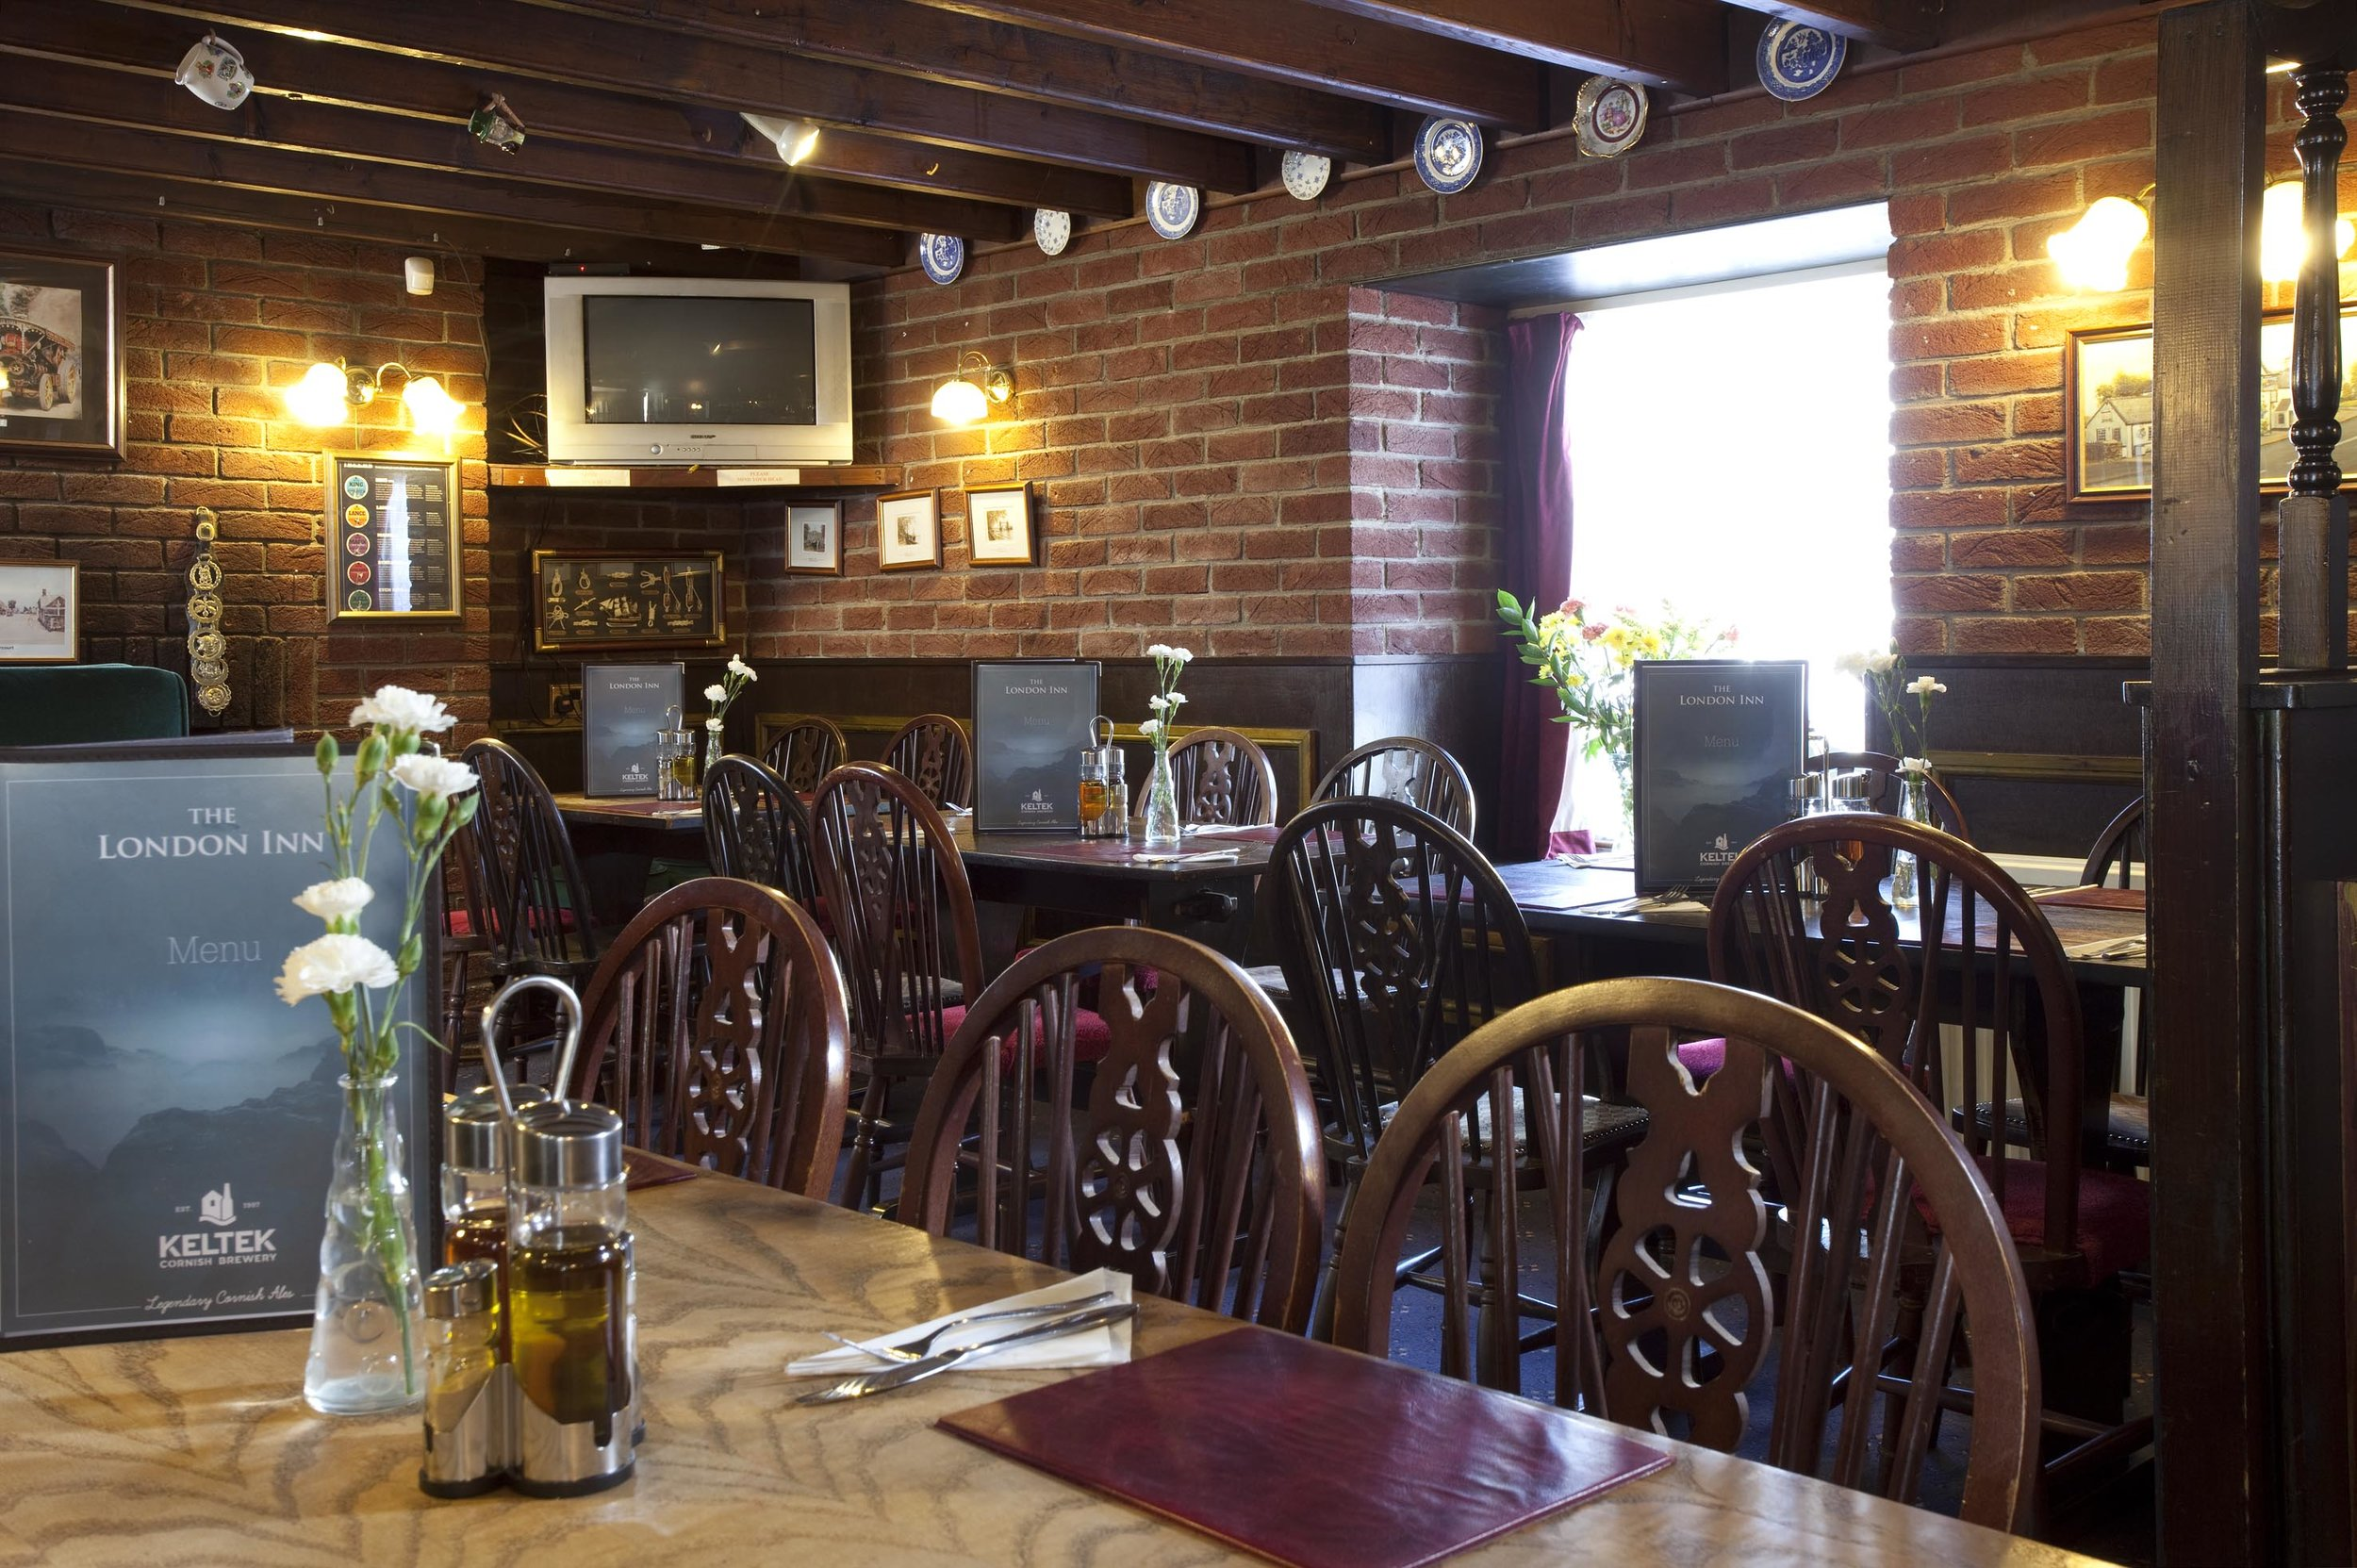 The London Inn, Summercourt - The furthest East of the Keltek pubs, just a minute or so off the main A30 trunk road and accessible when travelling in either direction. The London Inn is cosy and welcoming inside with a large car park.